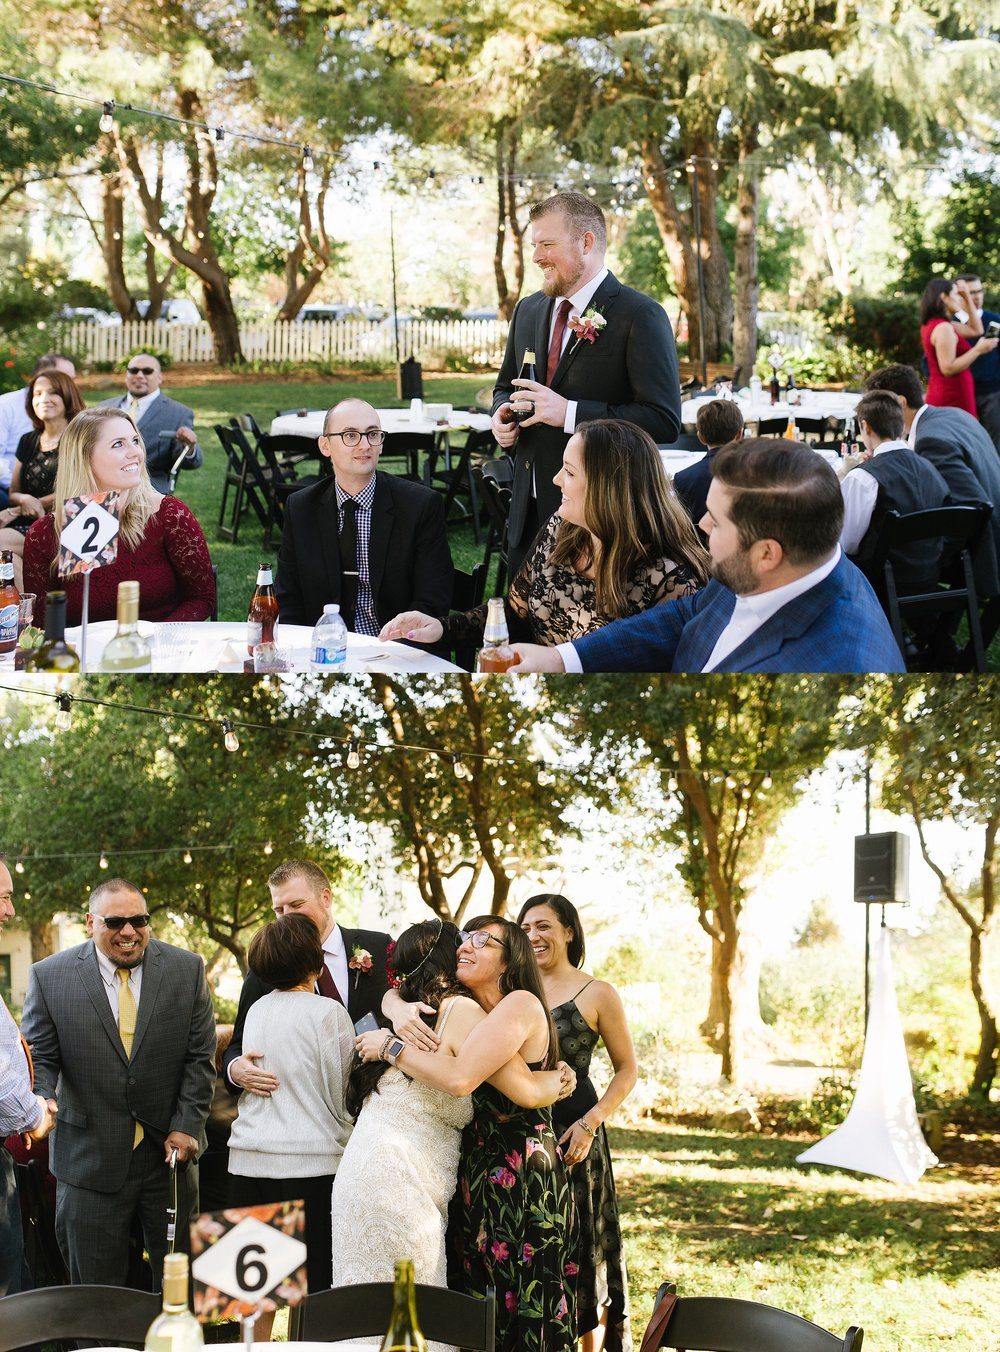 enissablake_Rengstorff_house_outdoor_wedding_cdp_0026.jpg